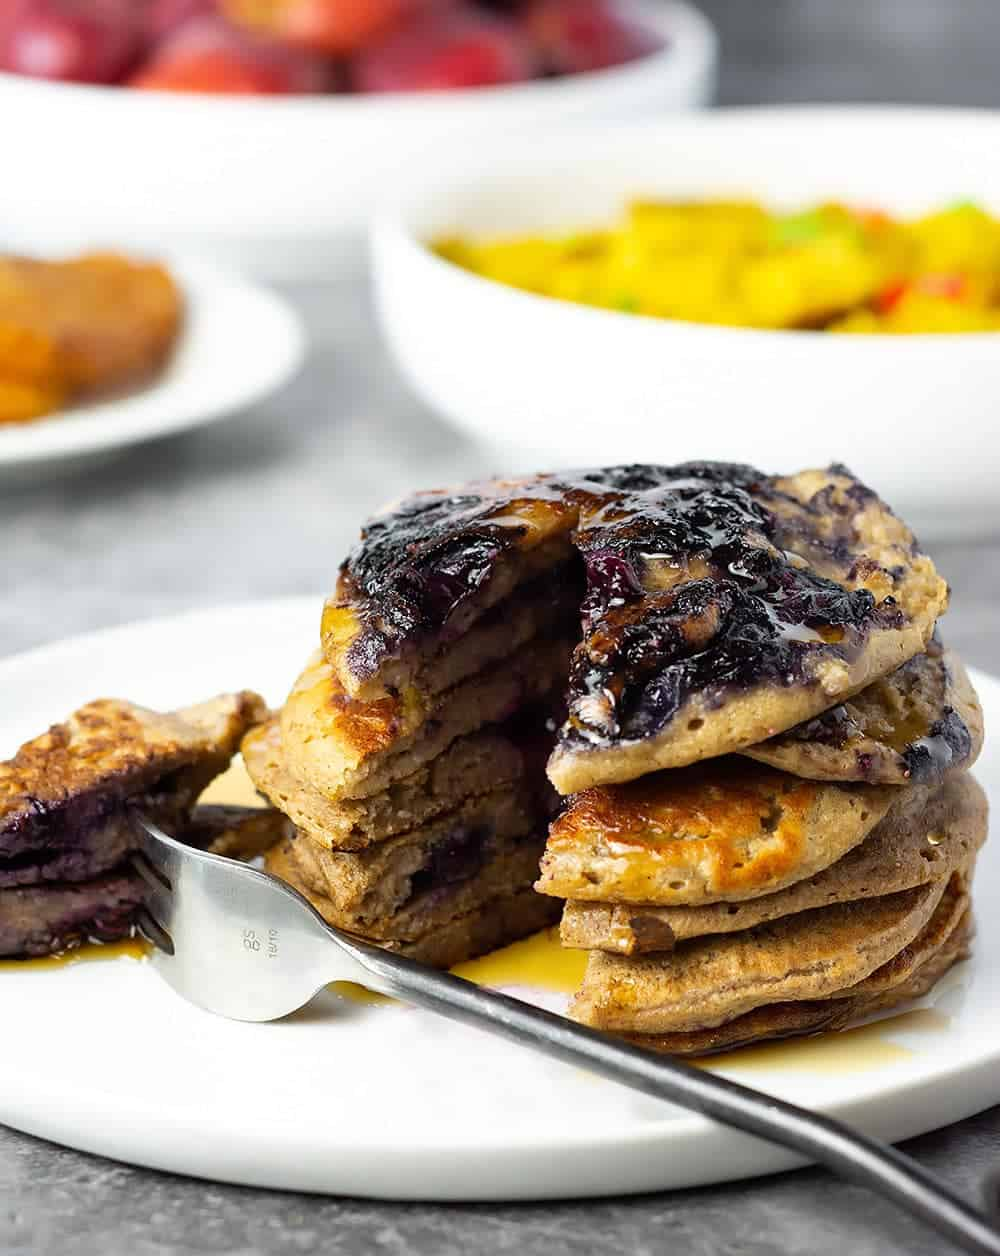 Cut through Banana Blueberry Pancakes on a white plate with a marbled background